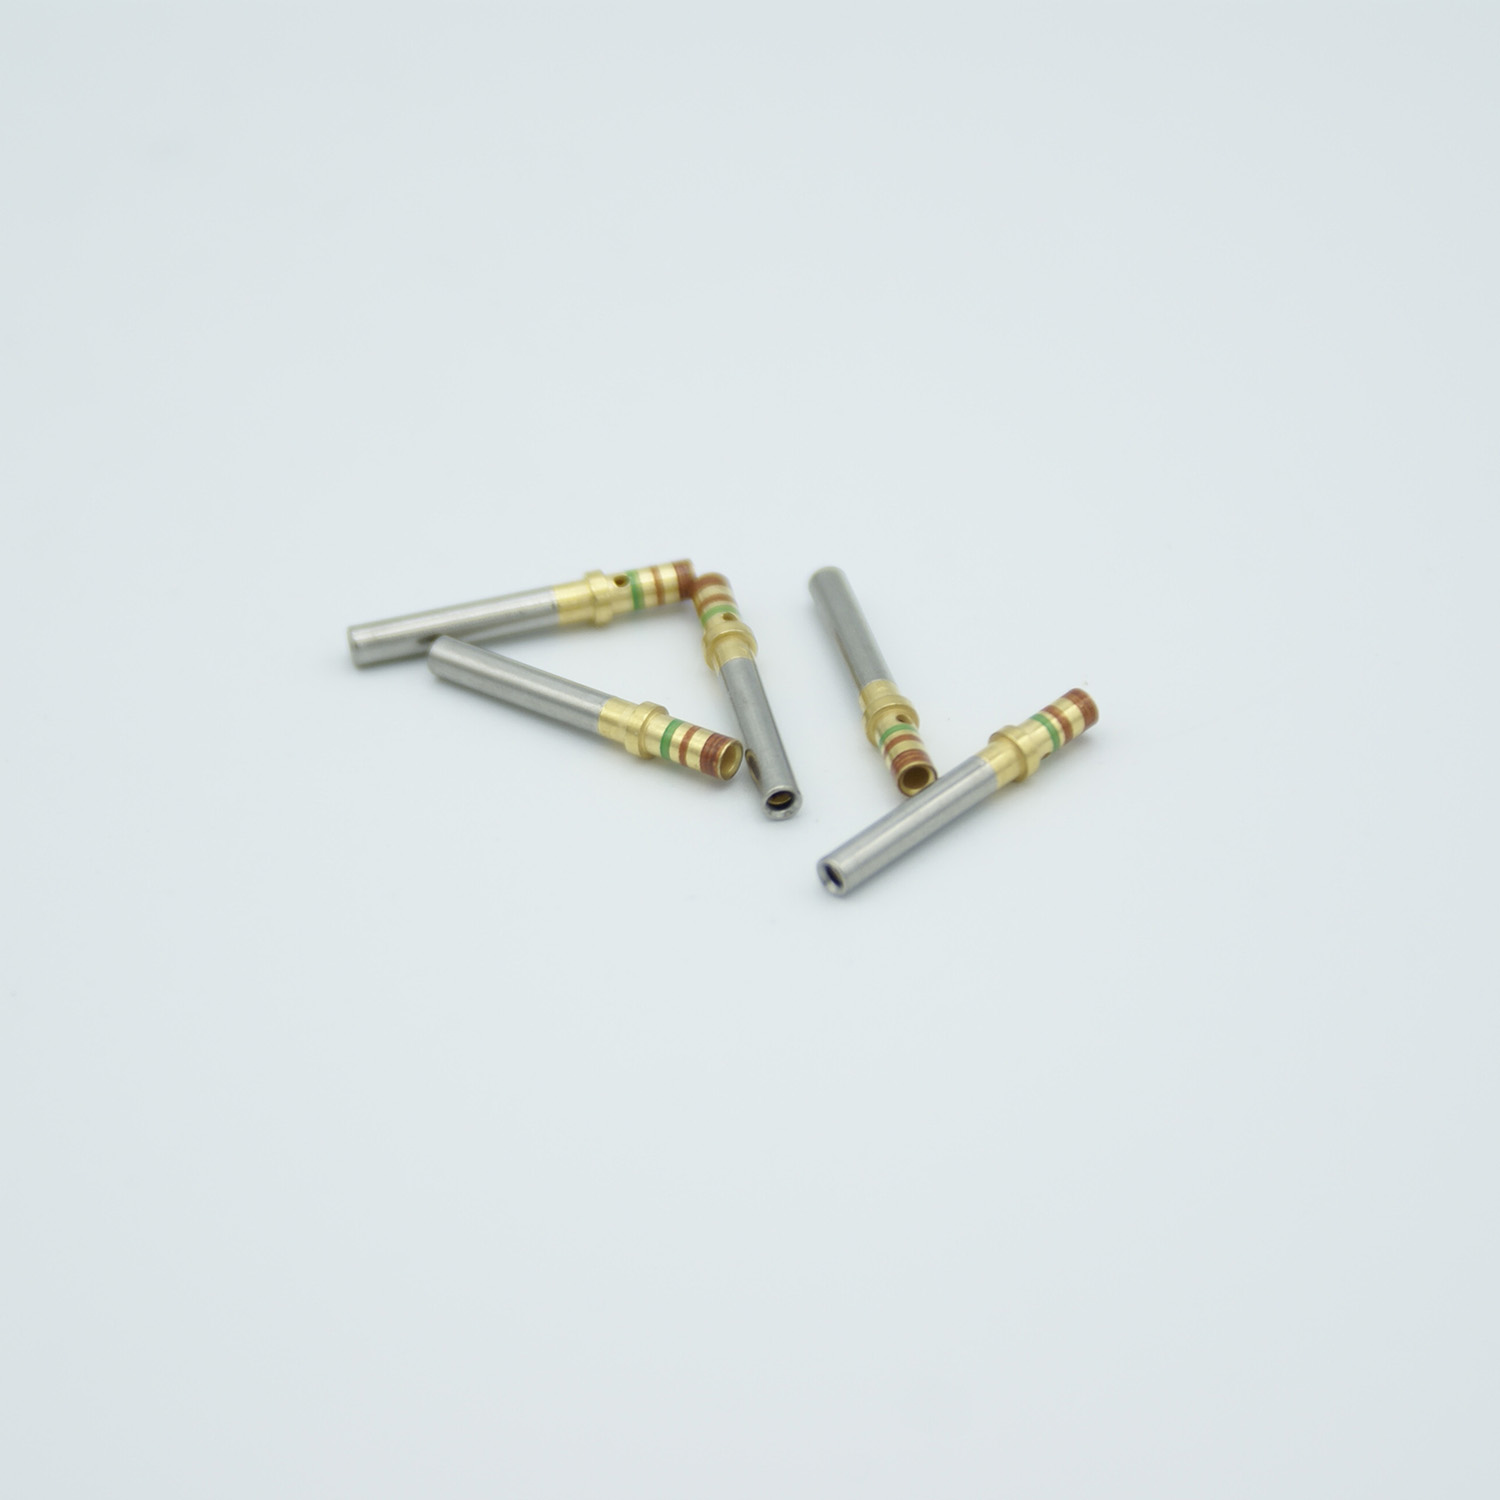 Power crimp type connector for pin size .040